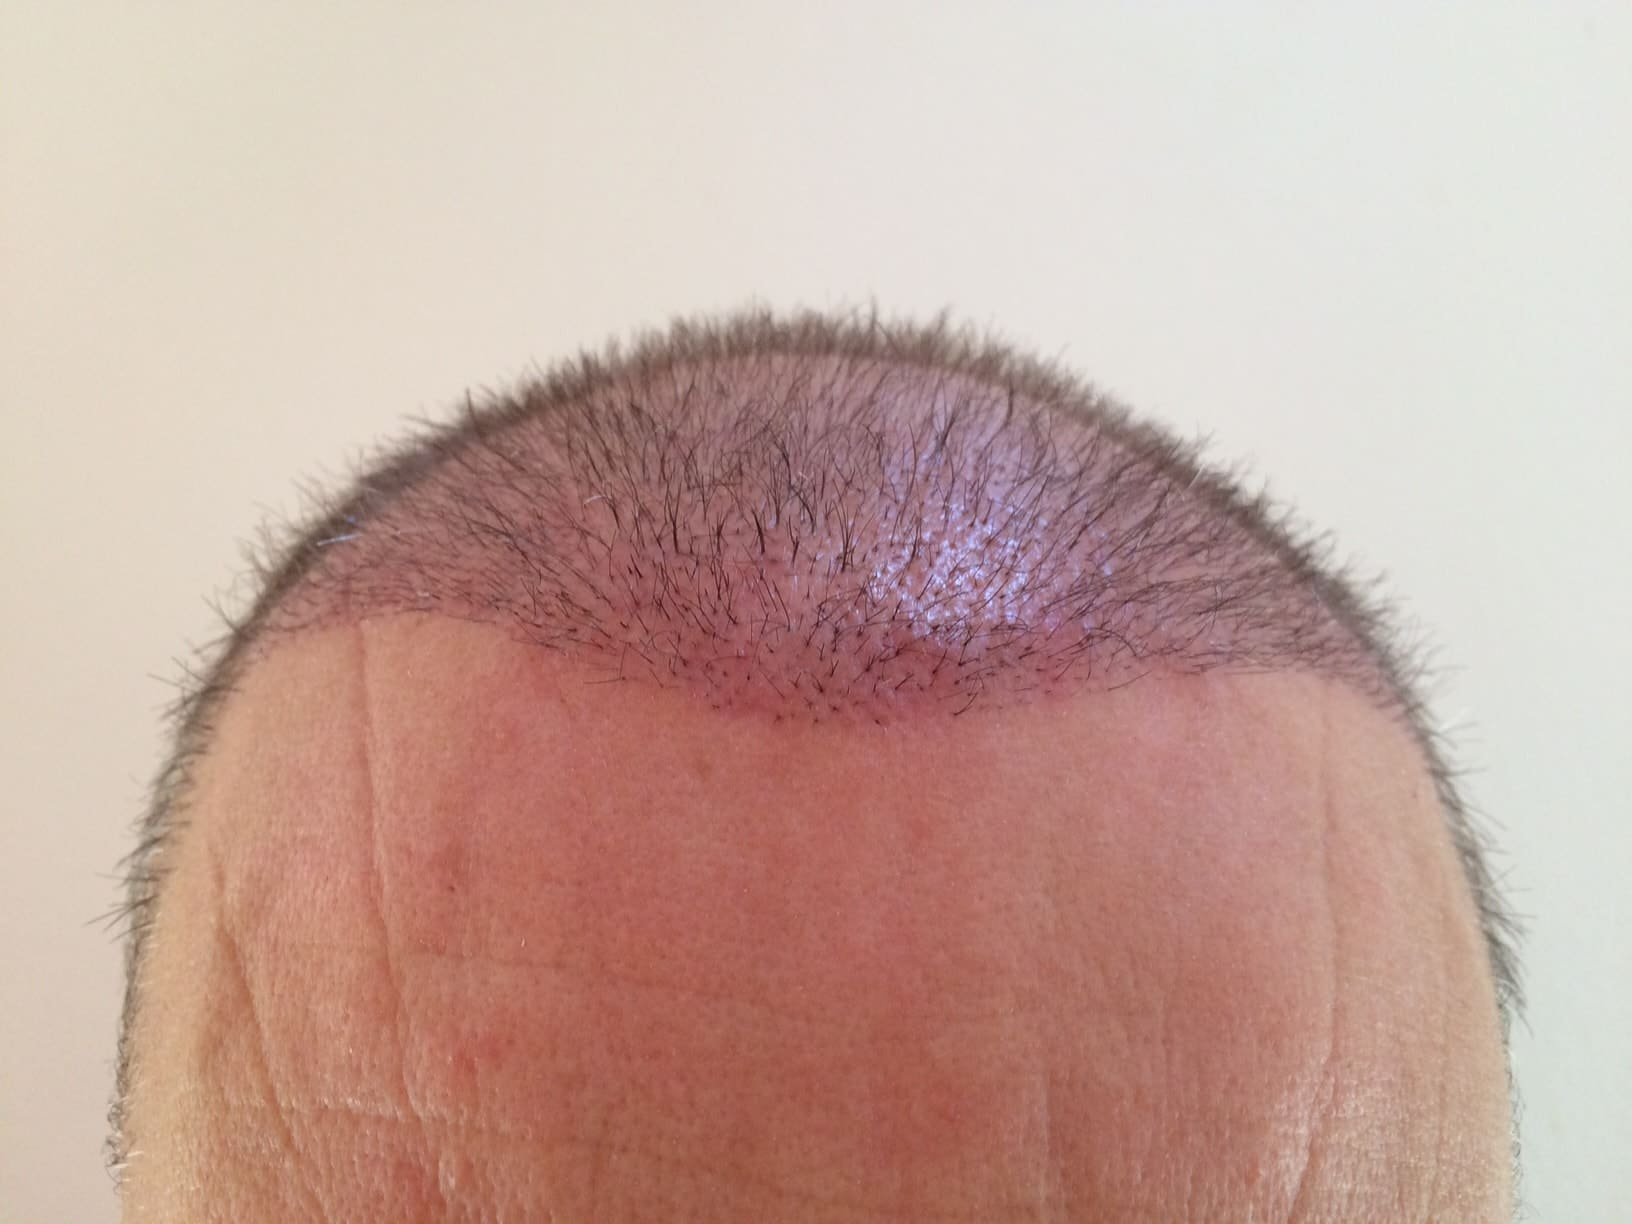 hair-transplantation-3-weeks